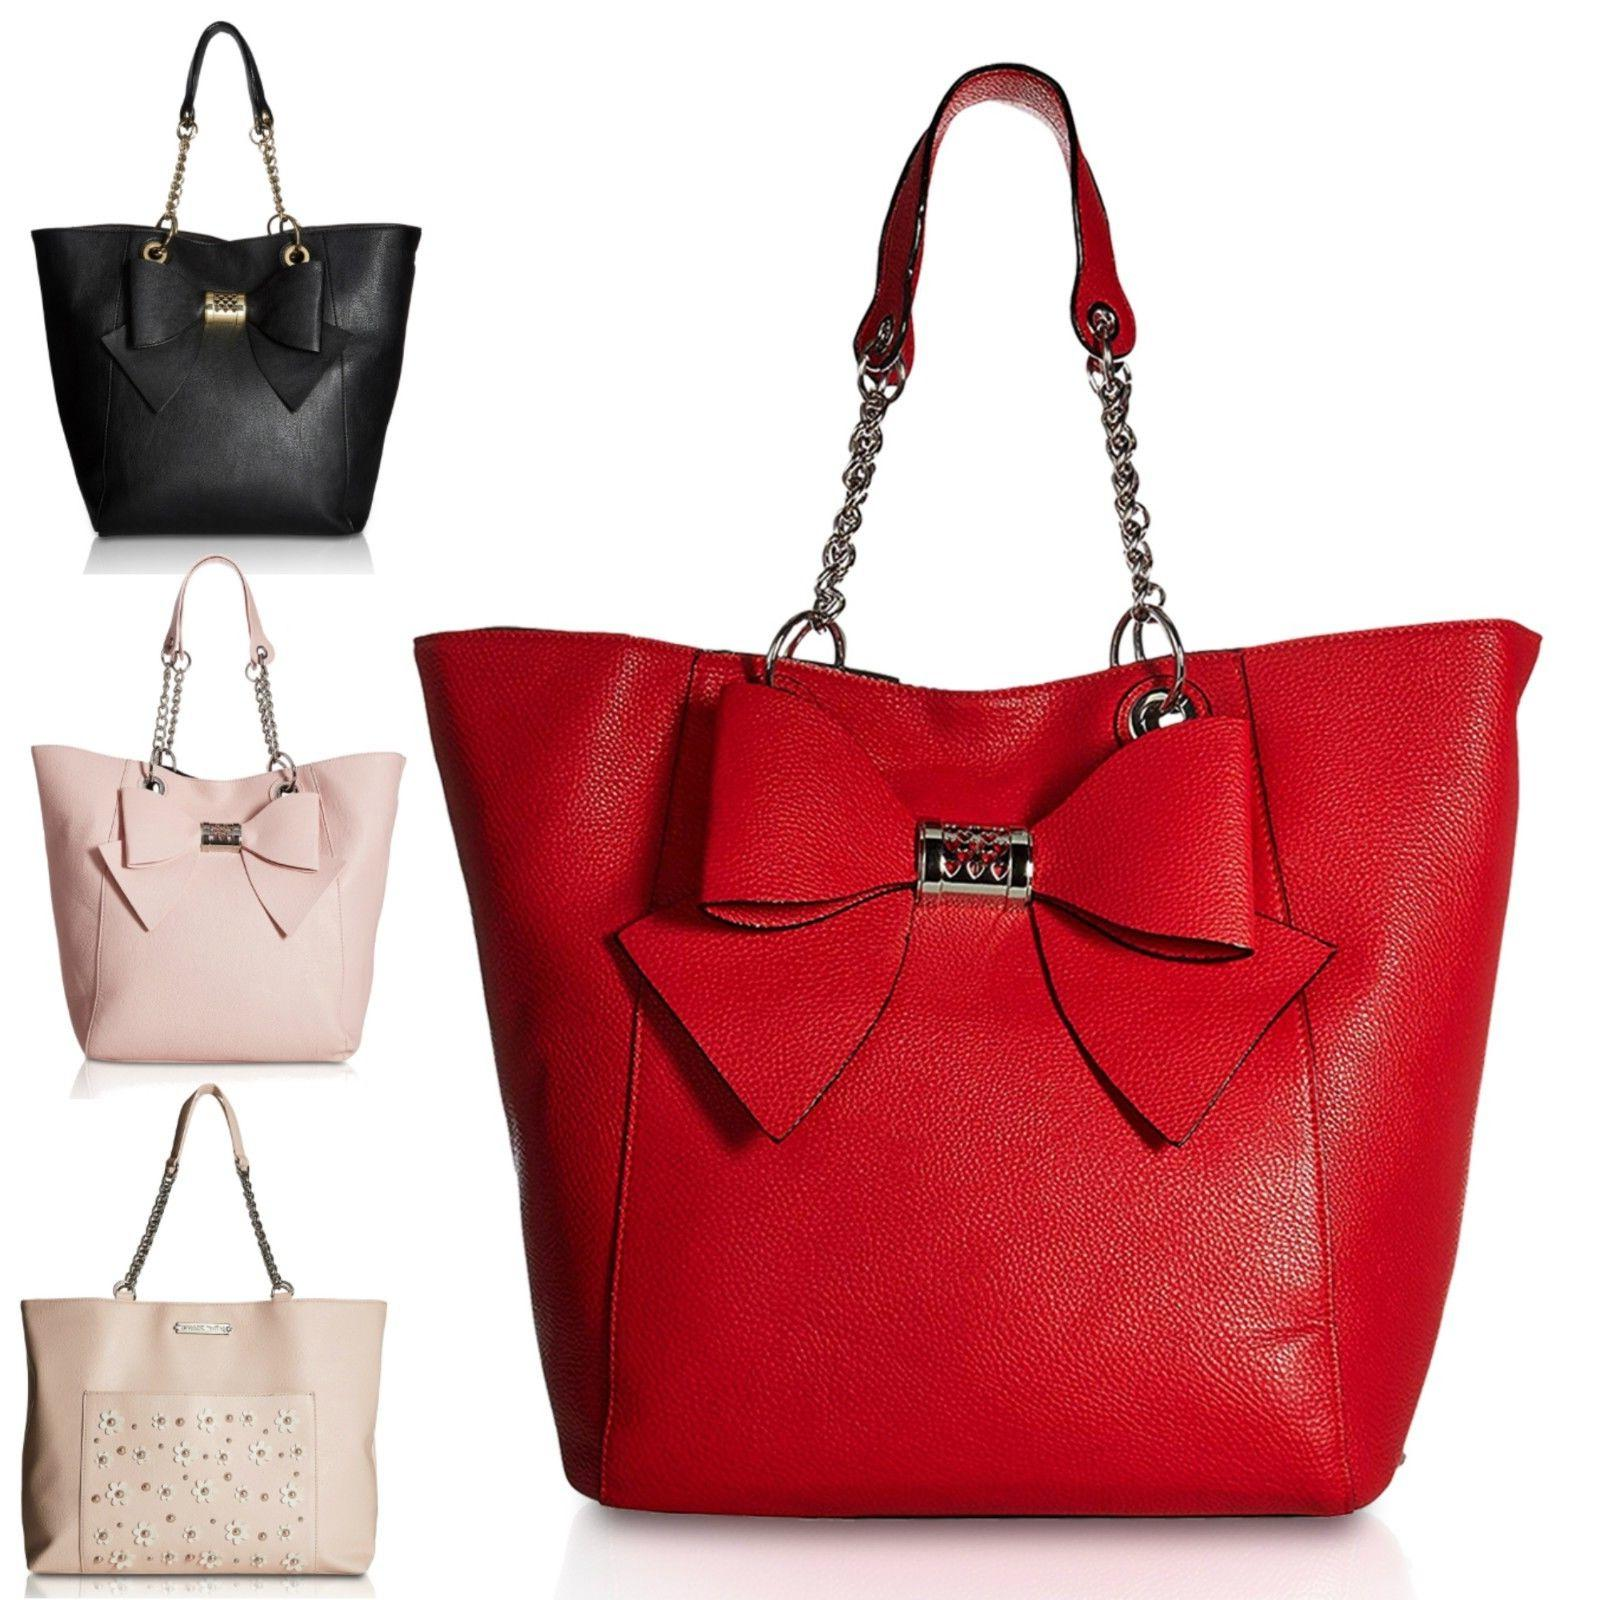 east west satchel tote bag with pouch